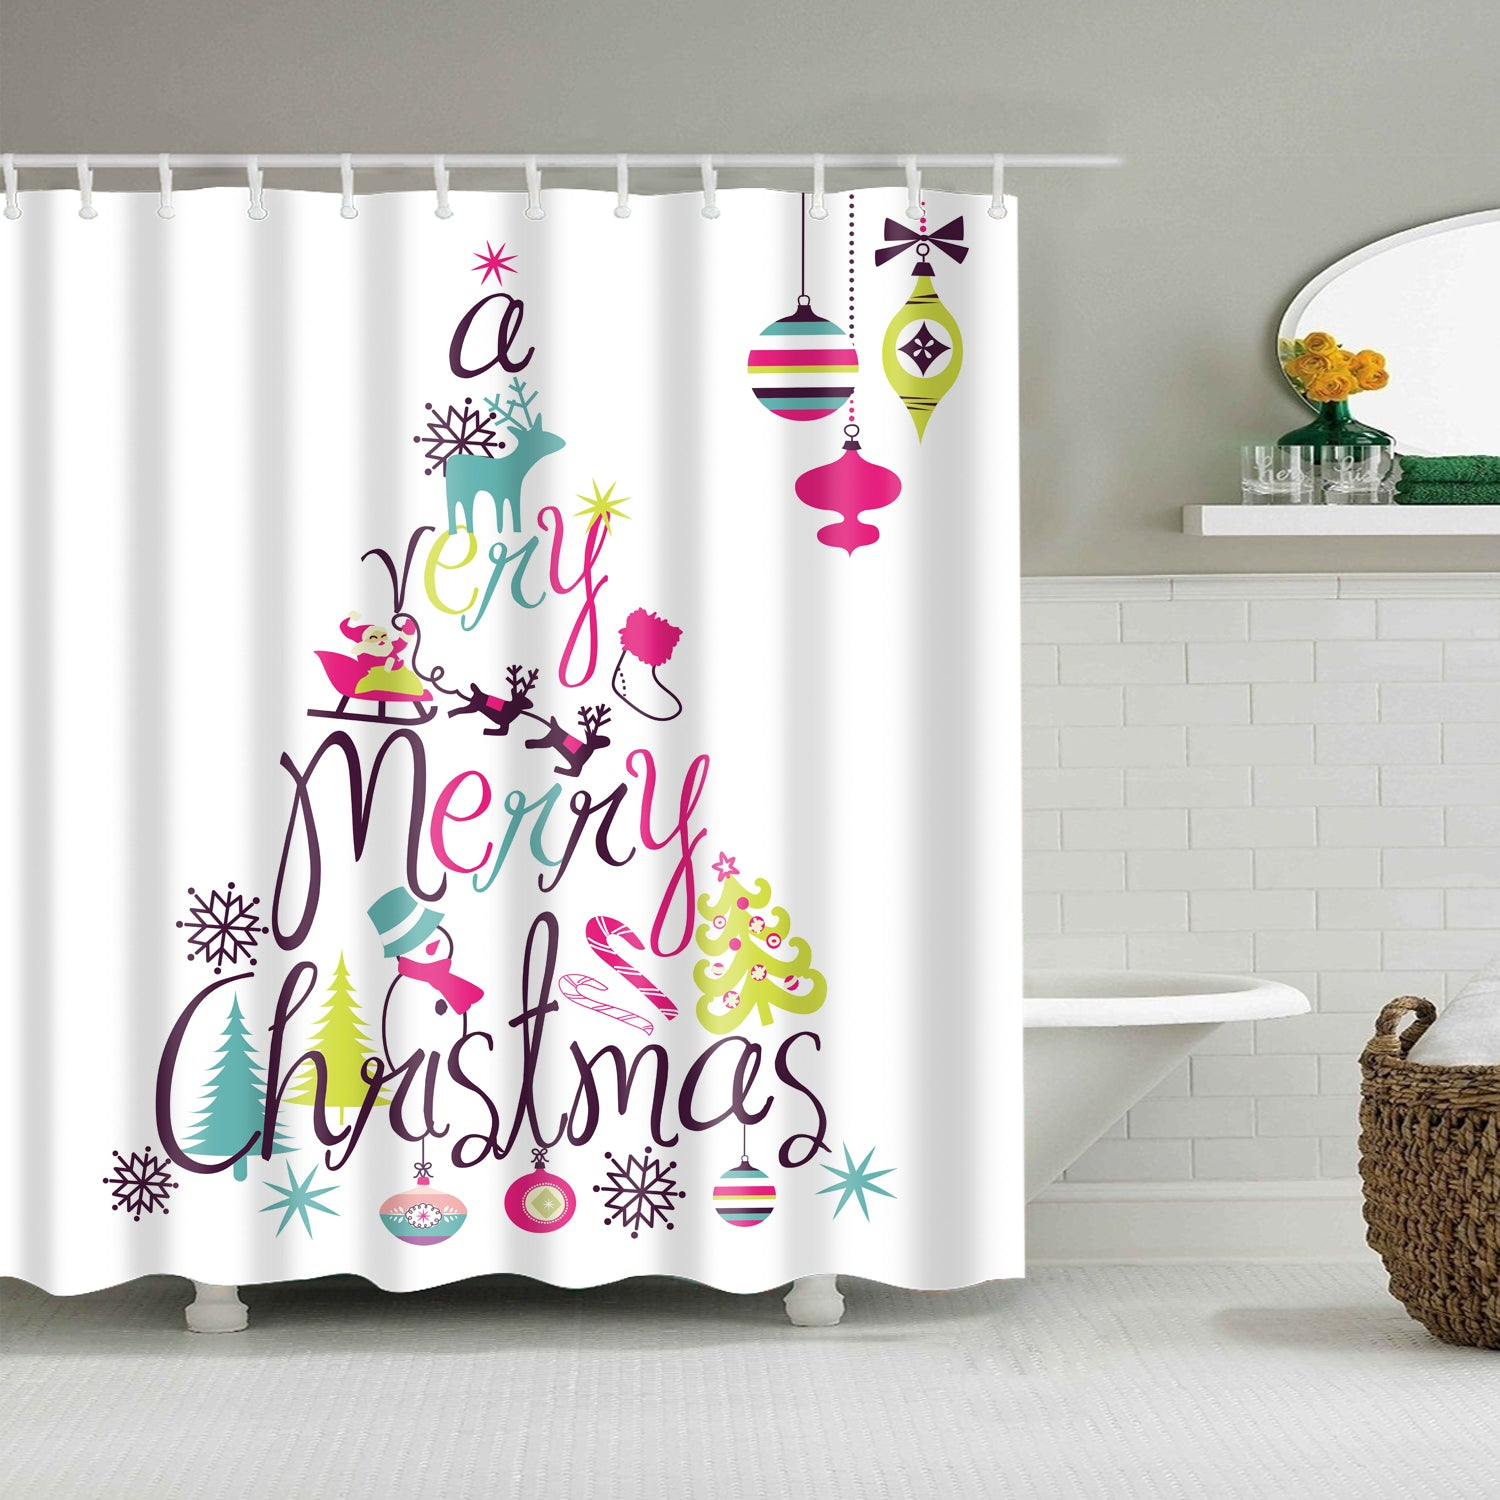 White Backdrop Unique Christmas Design Shower Curtain